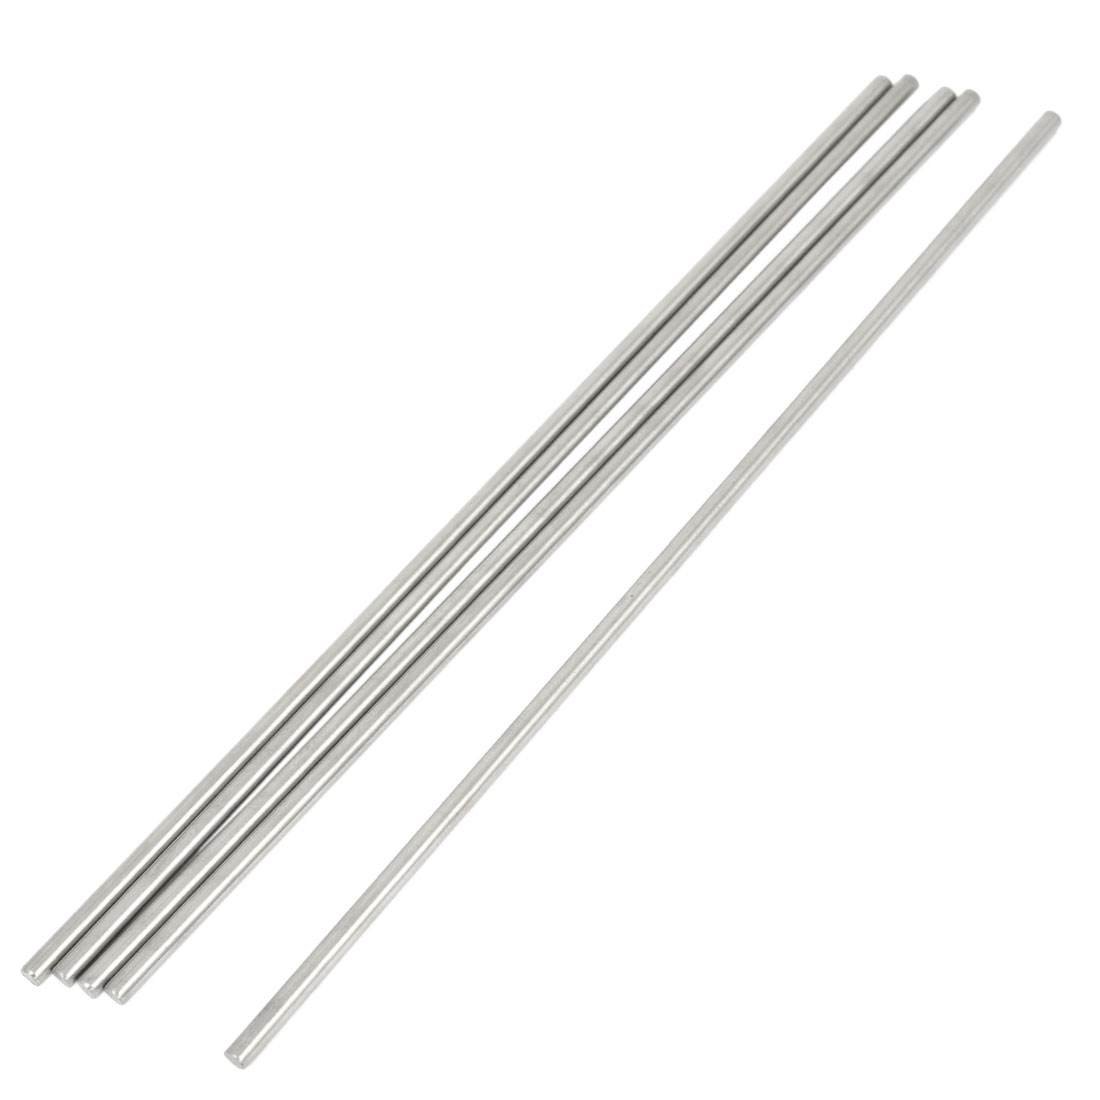 5 Pcs RC Airplane Model Part Stainless Steel Round Rods Axles Bars 3mm x 190mm